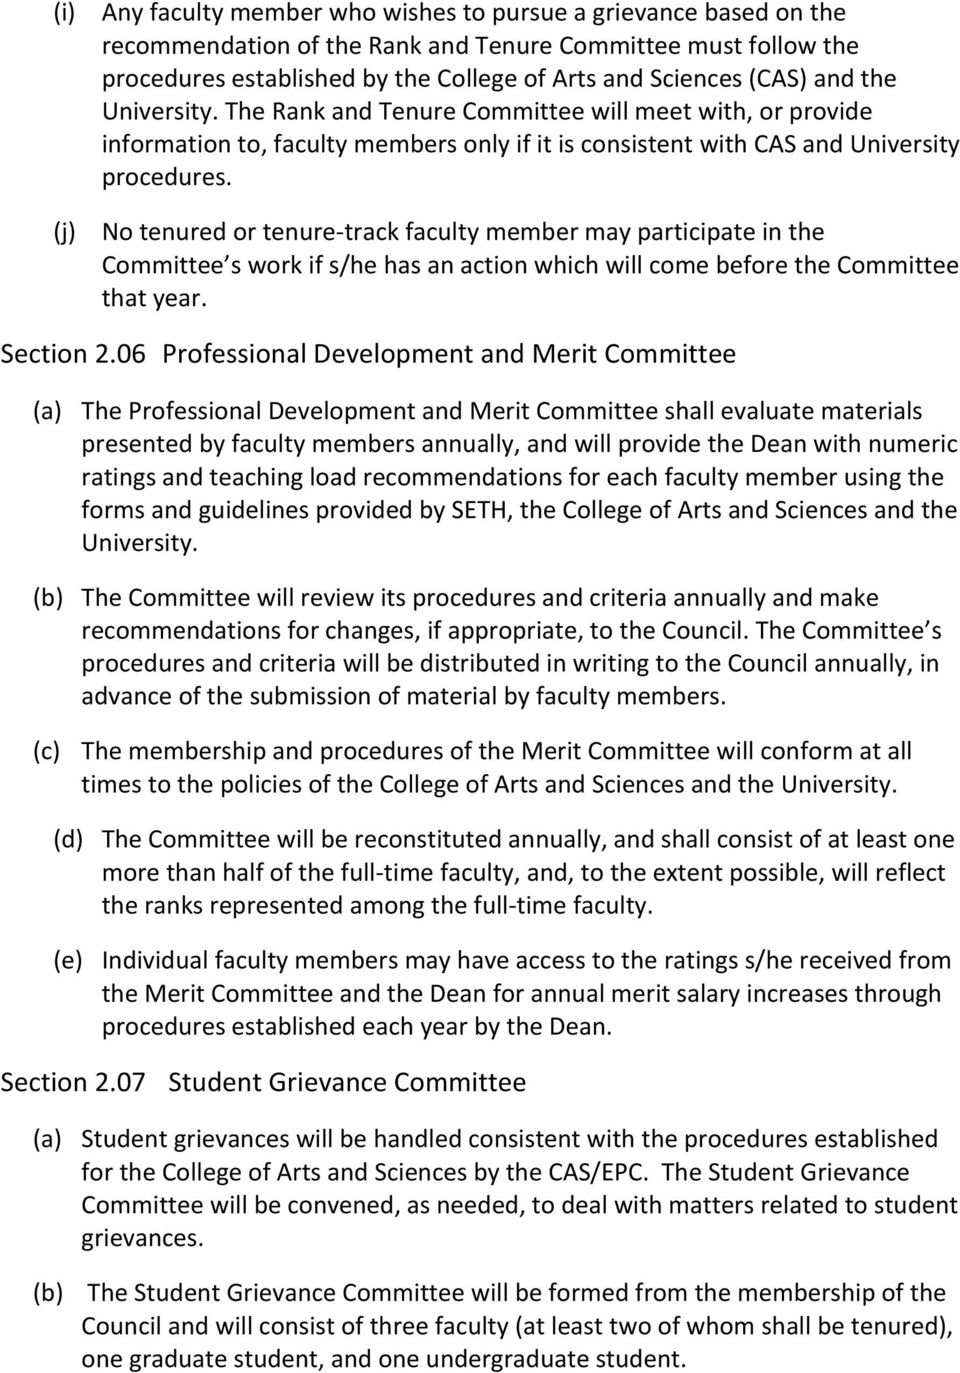 BY- LAWS OF THE SCHOOL OF EDUCATION, TEACHING & HEALTH - PDF